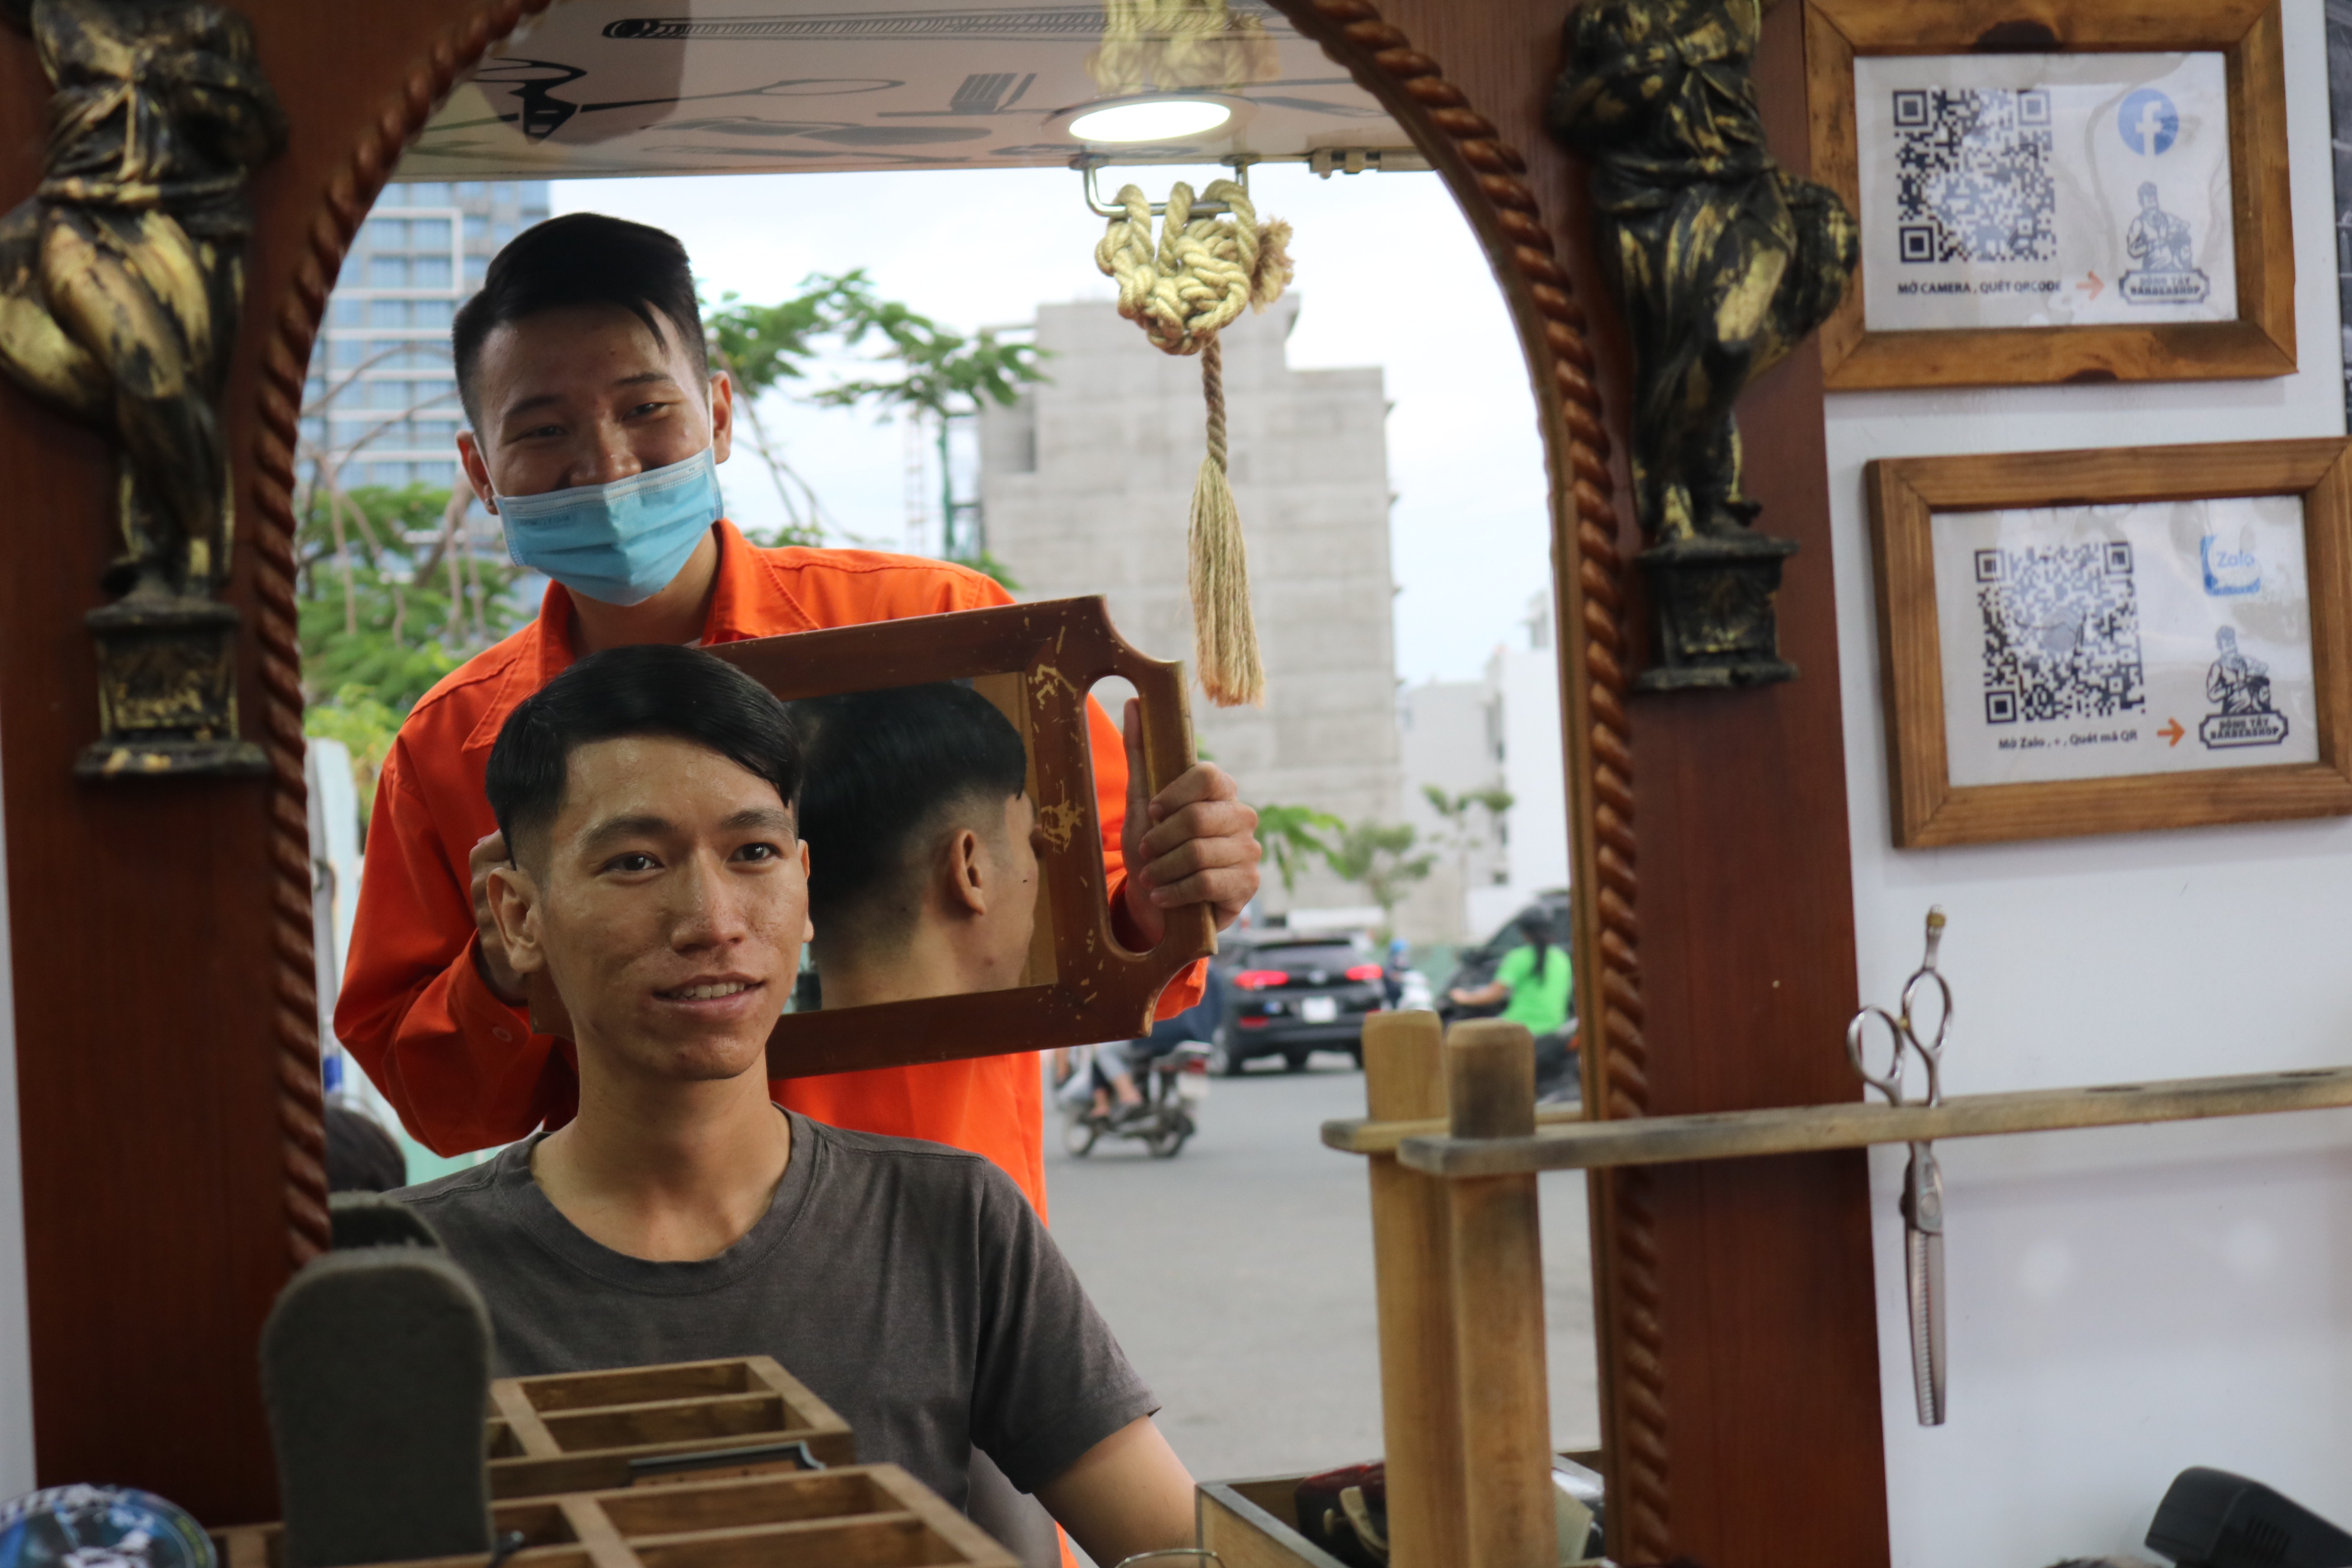 A barber shows a customer his new hairstyle after having a haircut at Dong Tay mobile barbershop, District 2, Ho Chi Minh City. Photo: Hoang An / Tuoi Tre